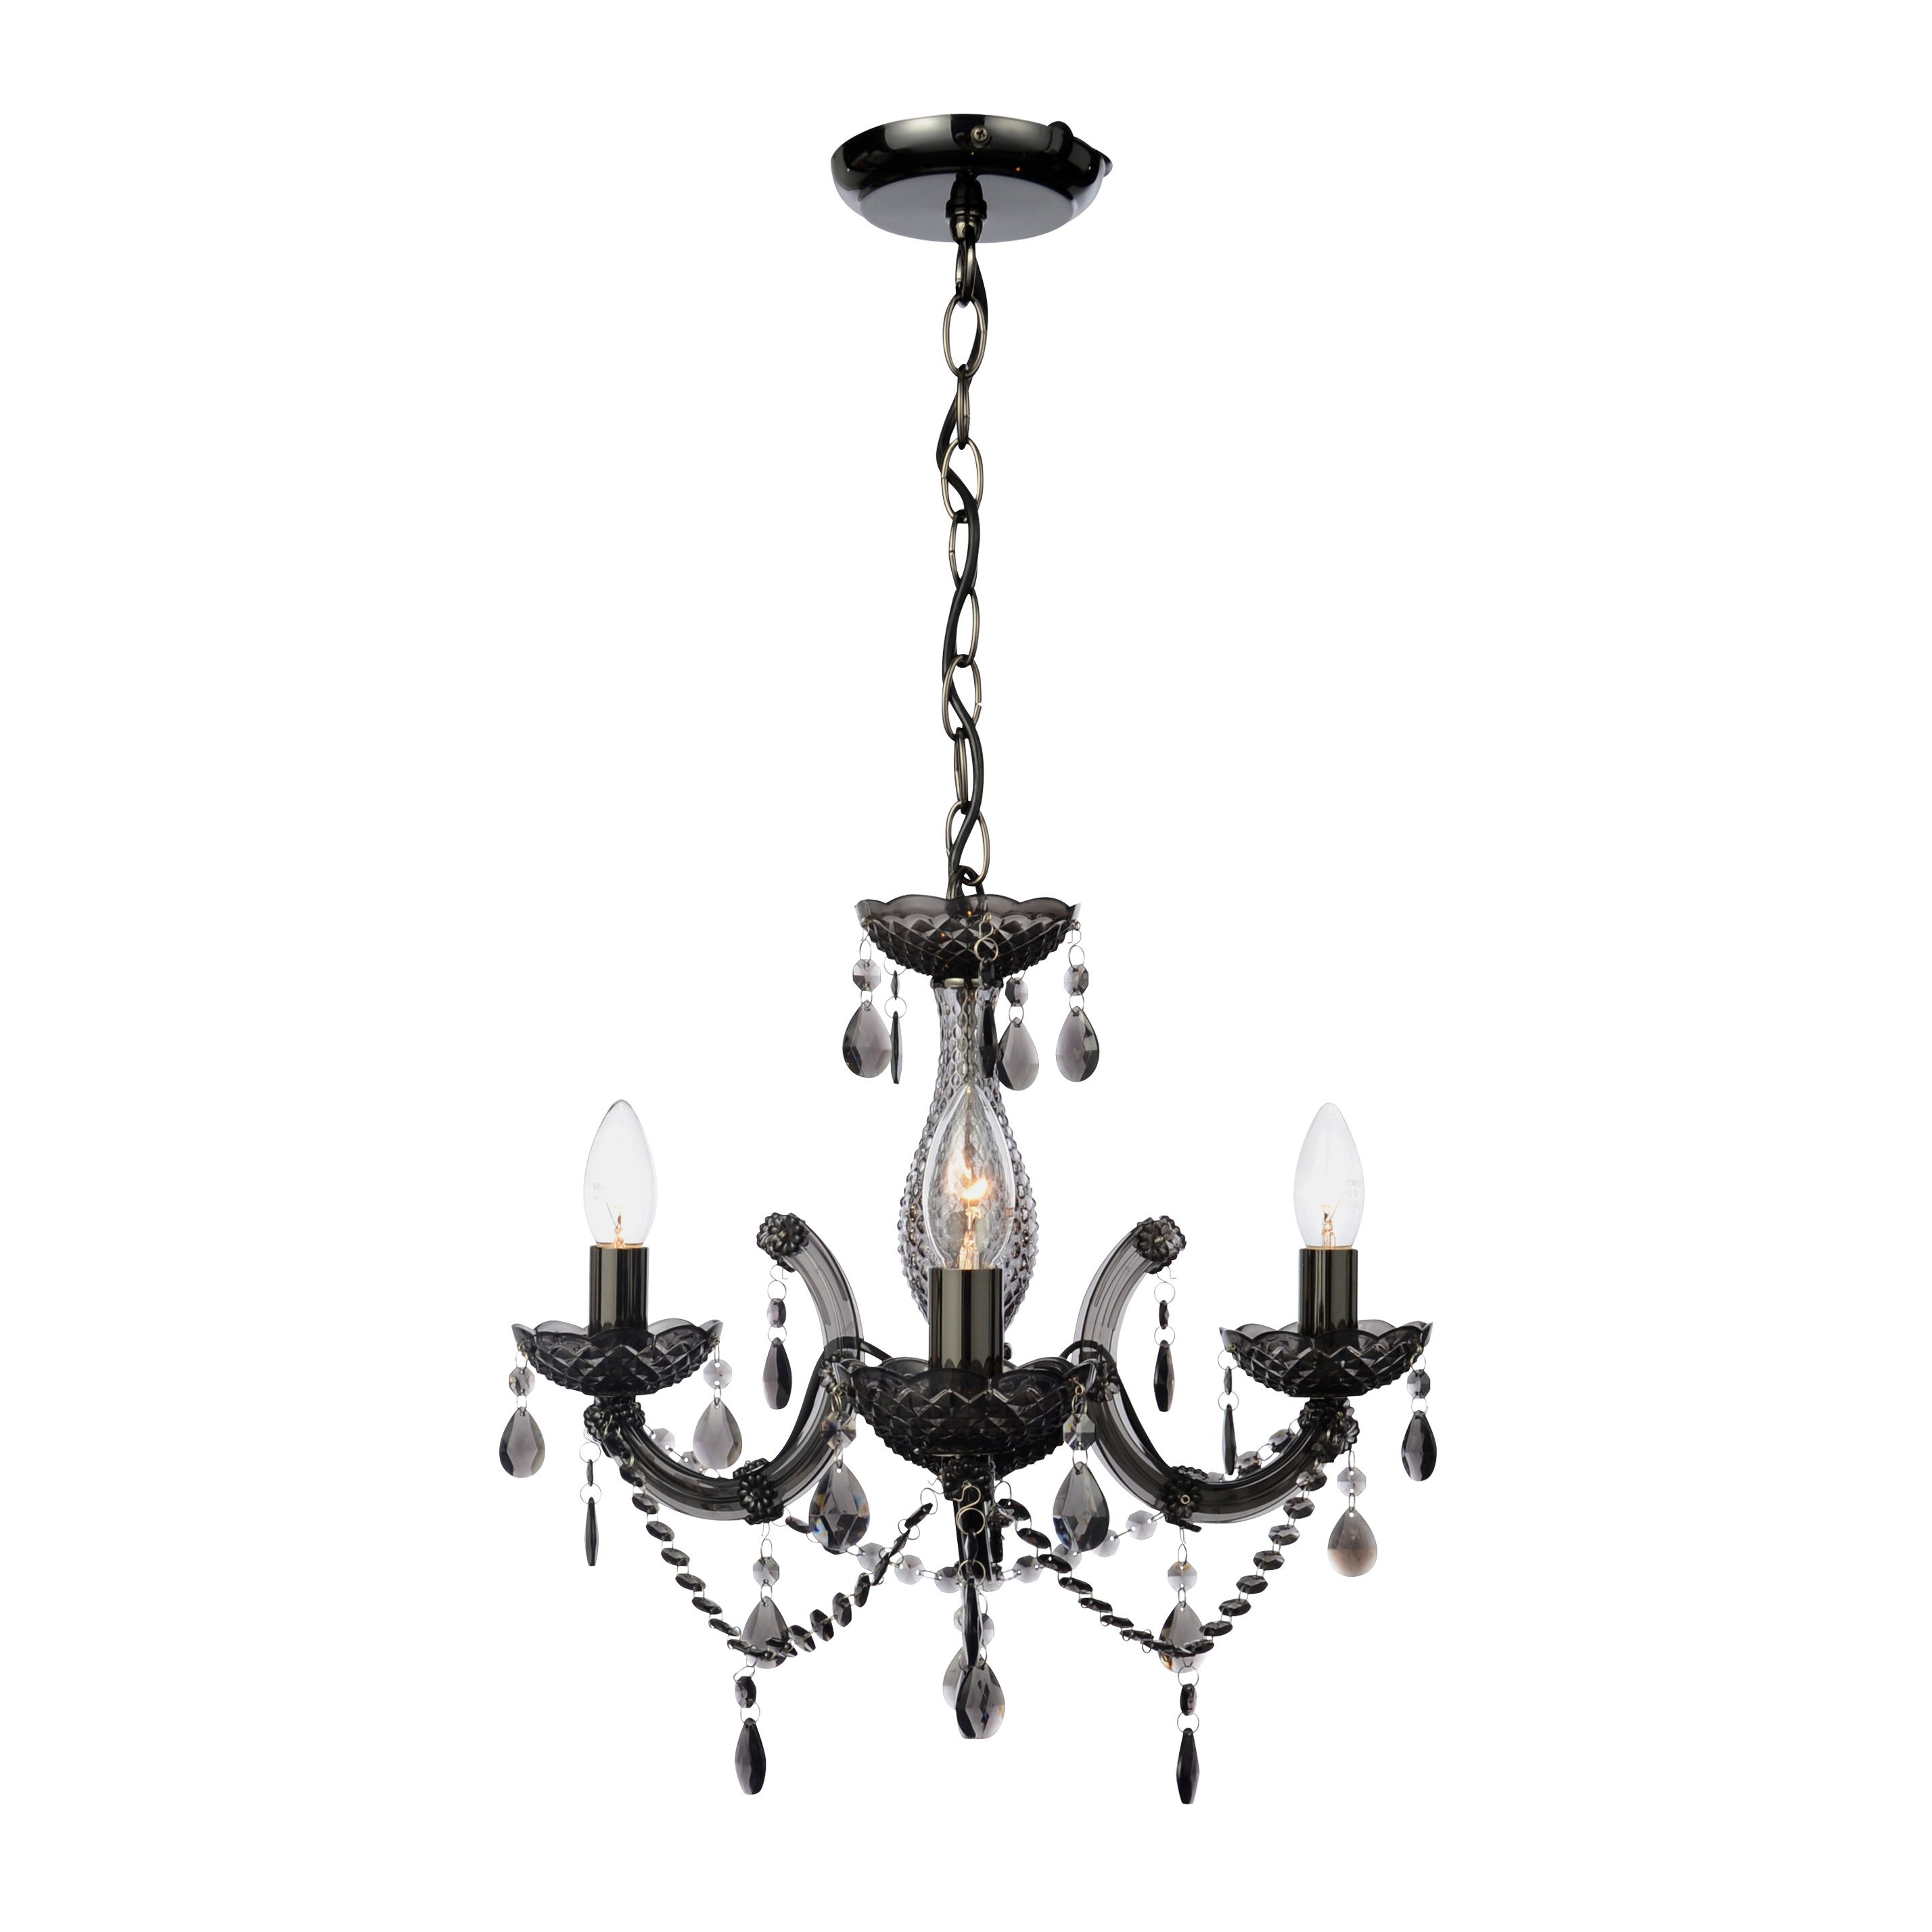 Annelise Crystal Droplets Smoked 3 Lamp Ceiling Pendant ...